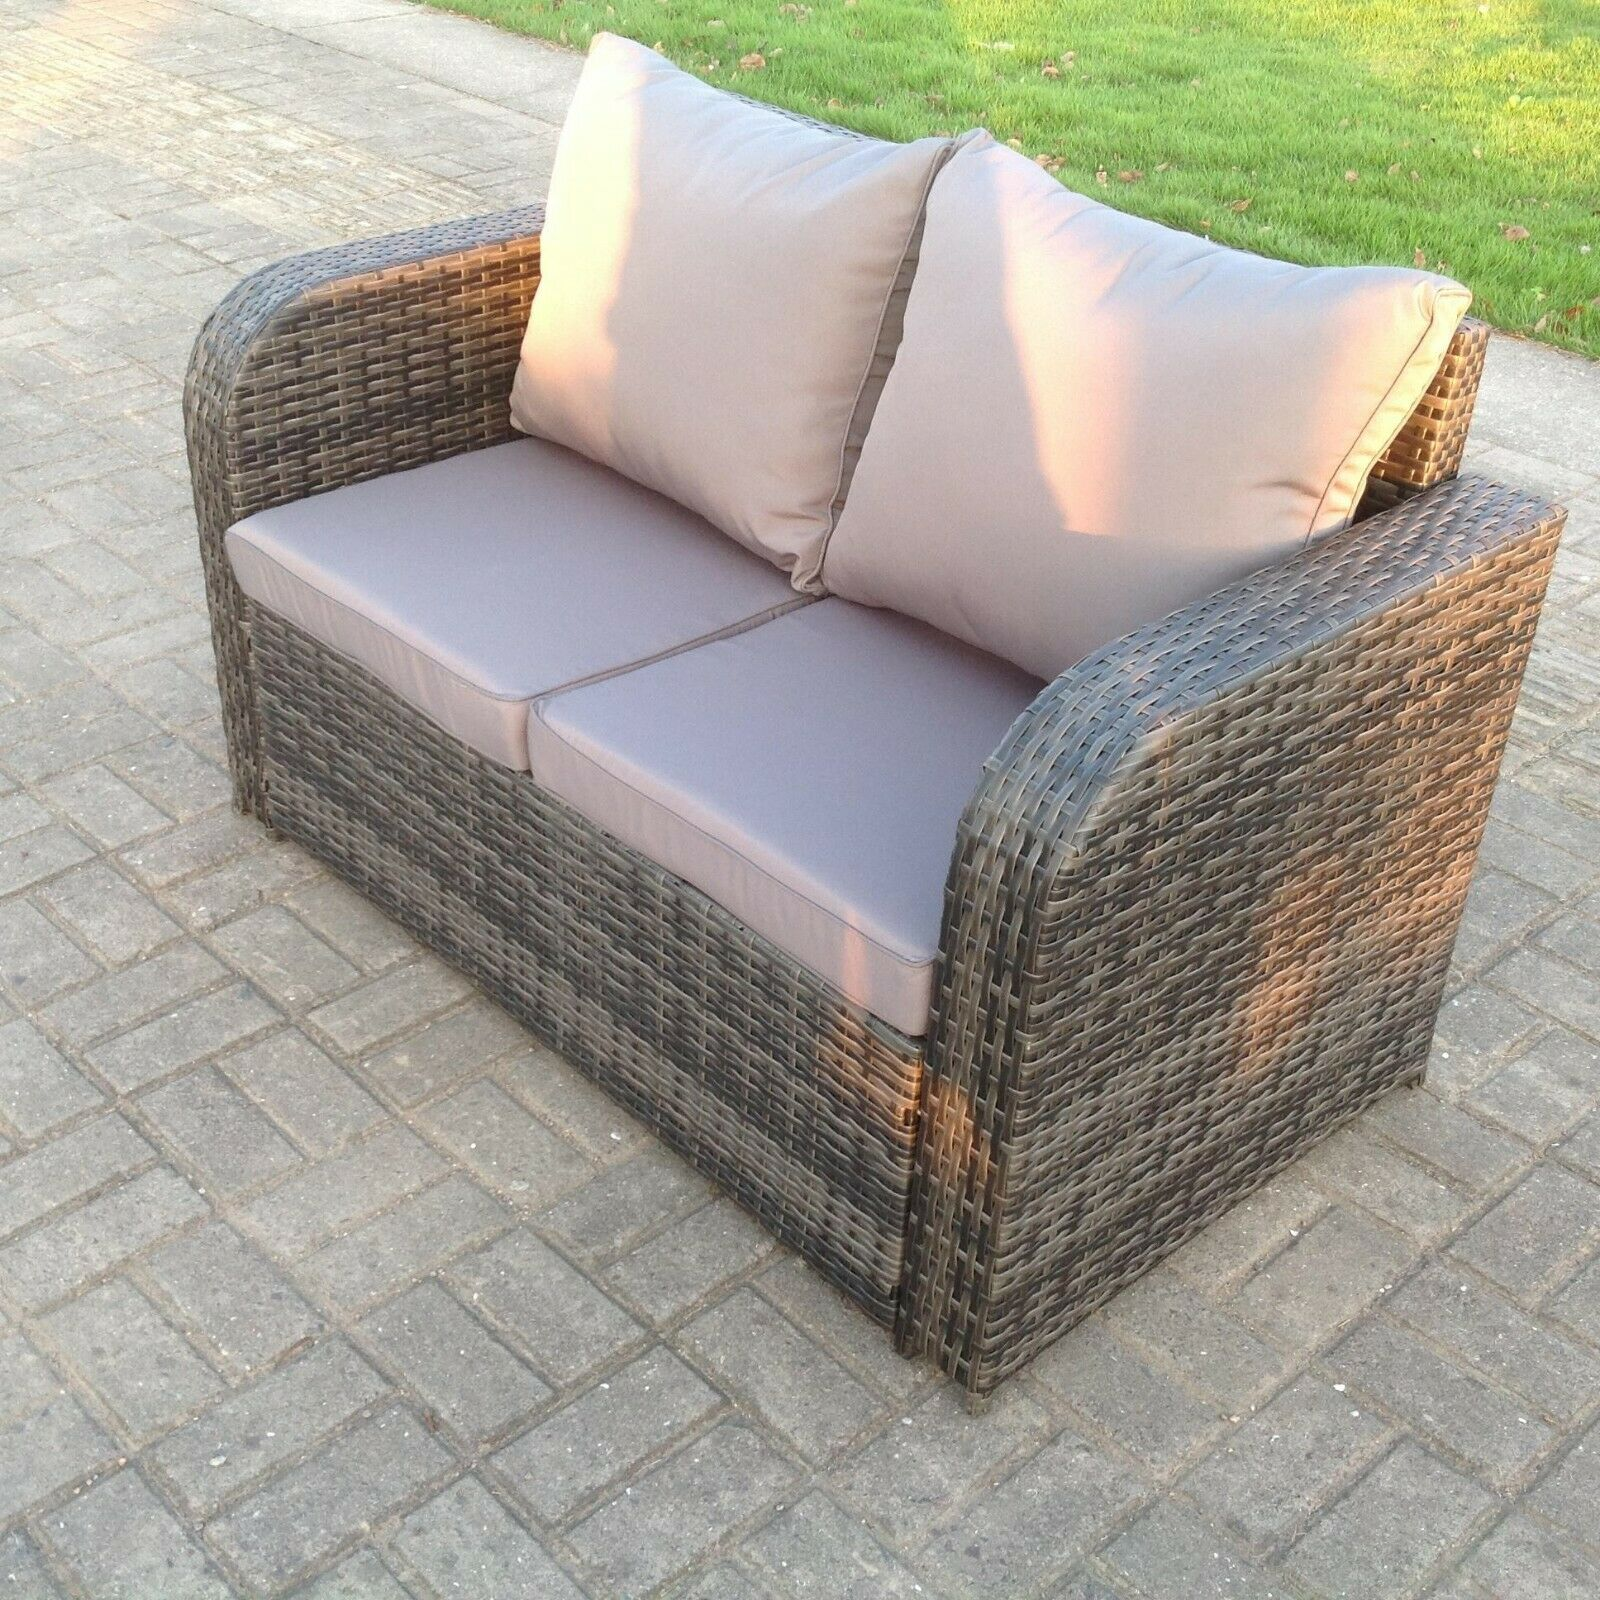 Garden Furniture - 2 Seater Curved Arm Rattan Sofa Patio Outdoor Garden Furniture With Cushion